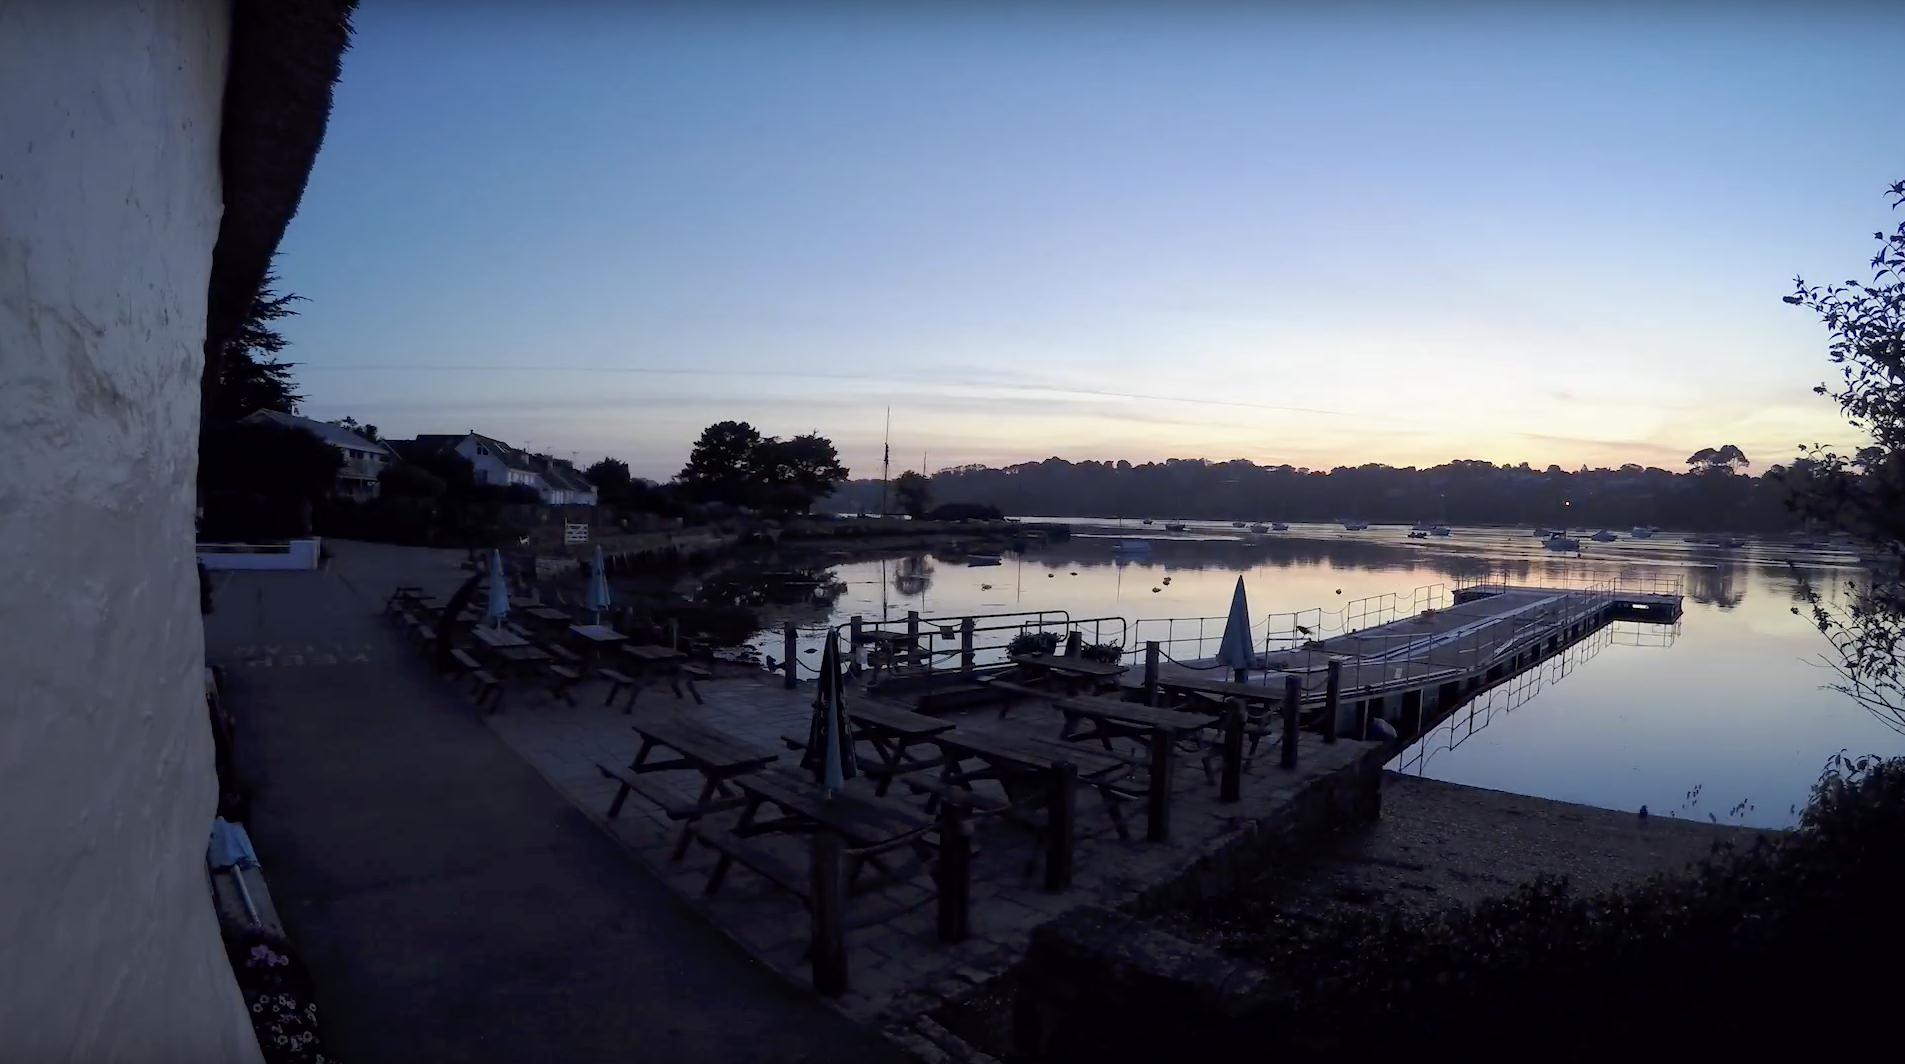 Time-lapse: Capturing the Construction of a new Pontoon